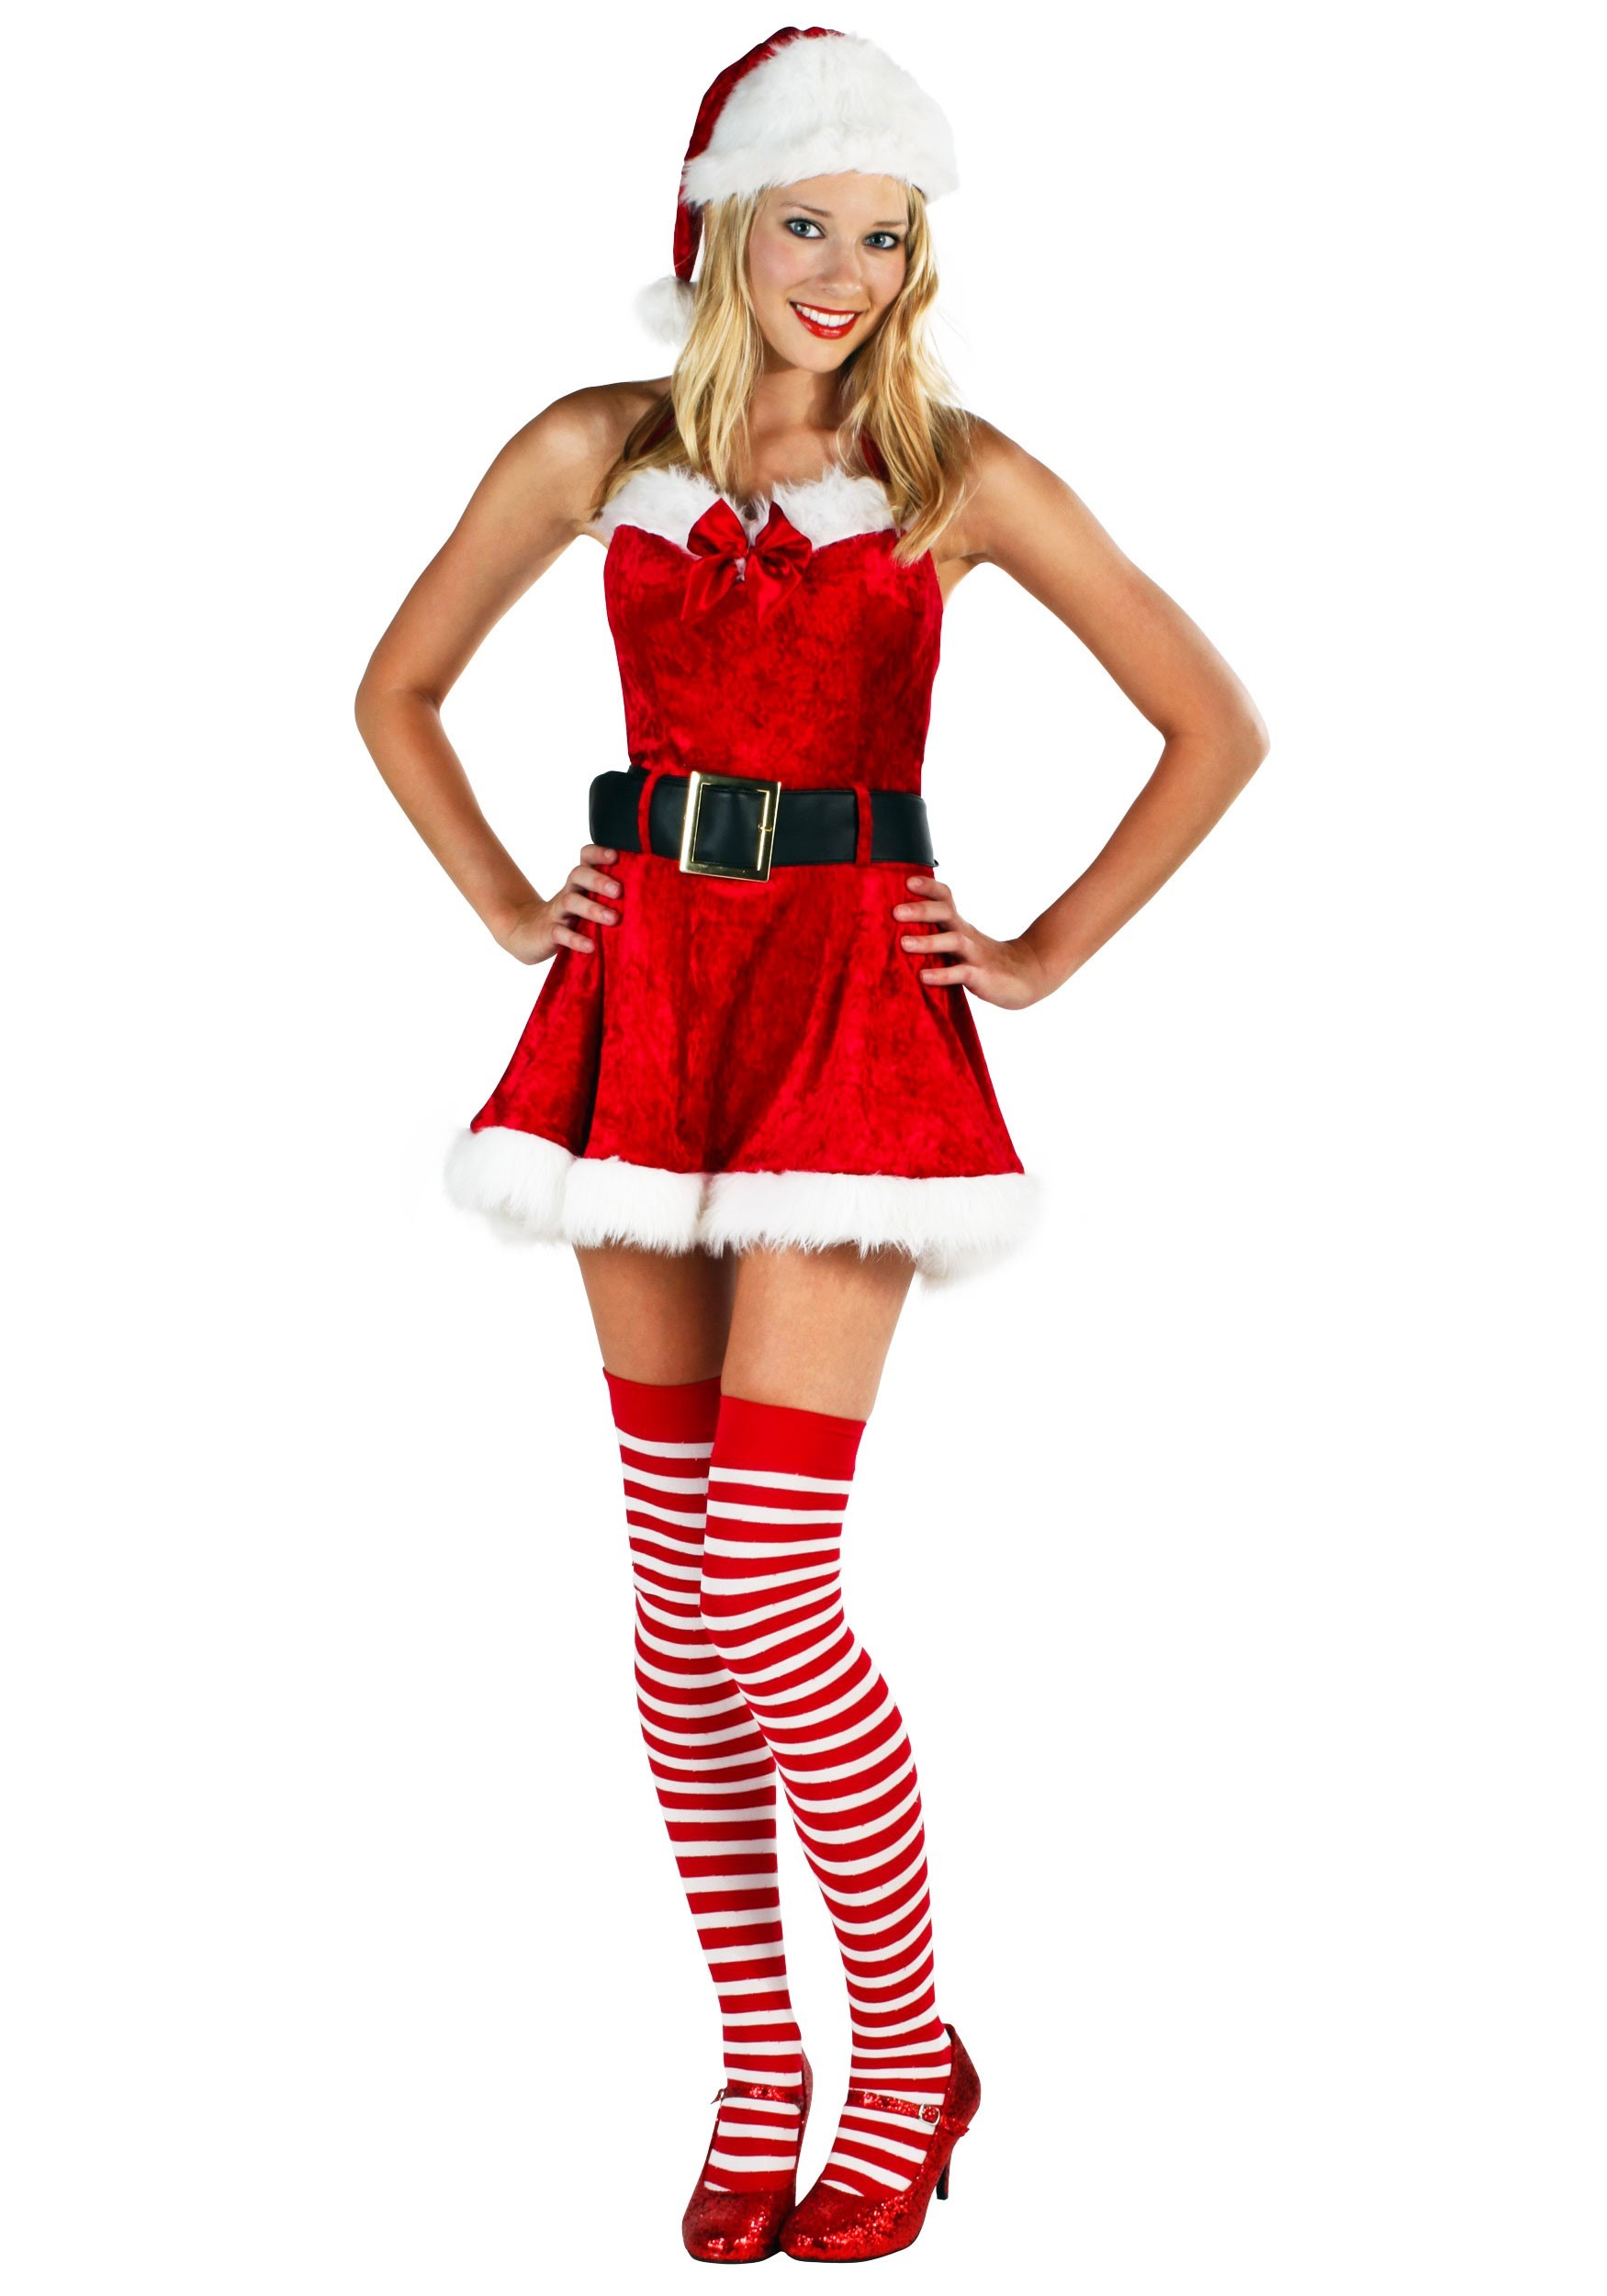 Hot elf babes fucking santa claus pictures hentia picture